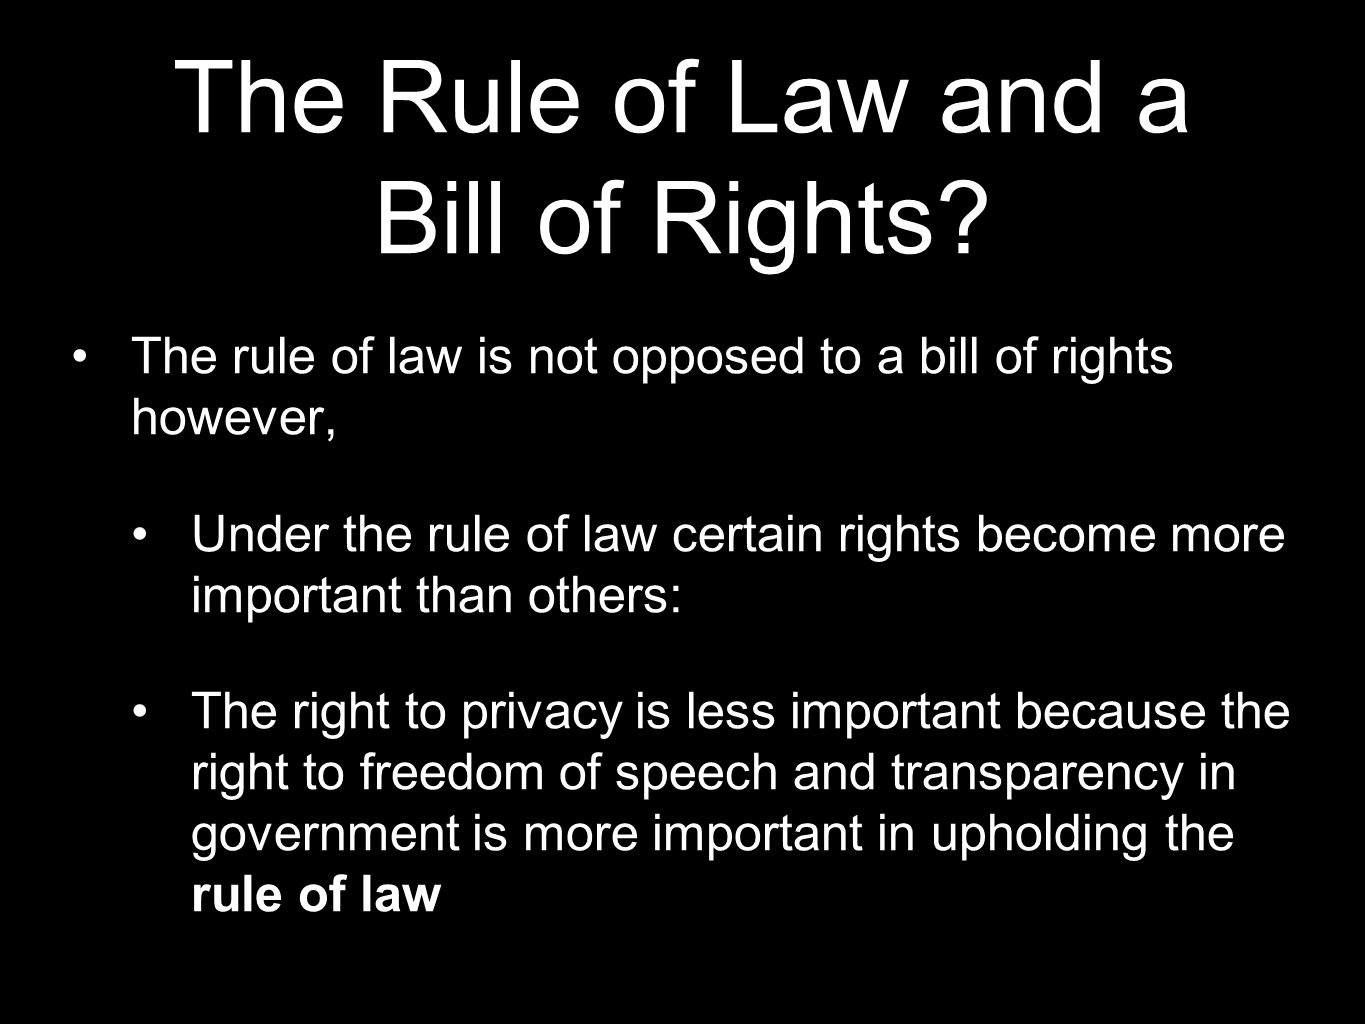 The Rule of Law and a Bill of Rights